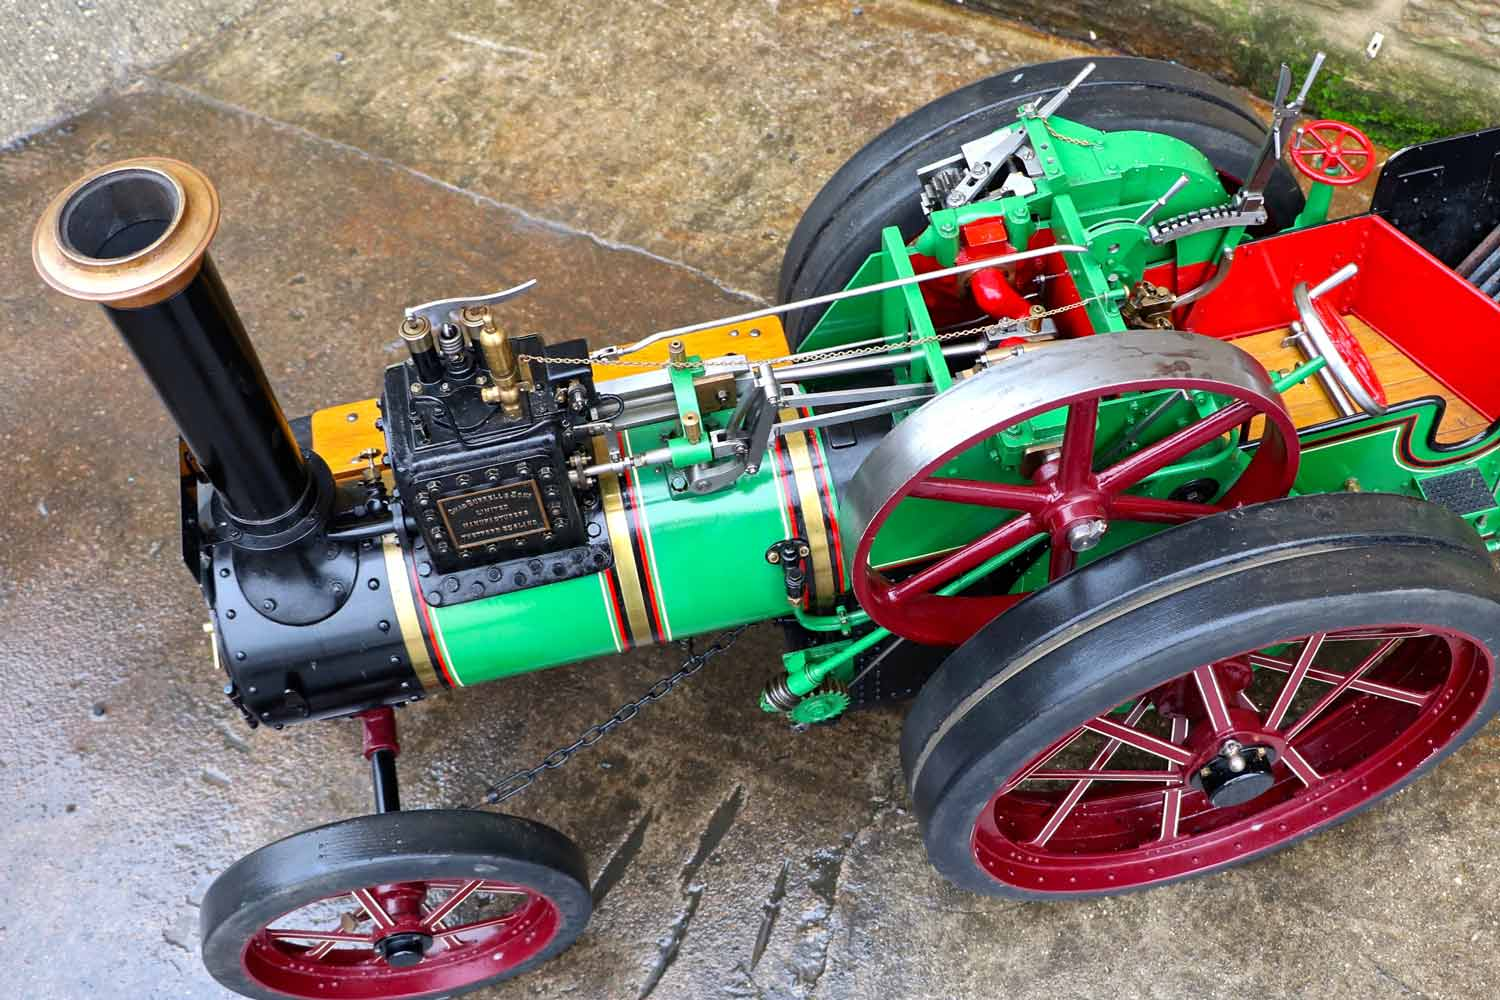 test 3-inch-Burrell-traction-engine-plastow-live-steam-for-sale-7